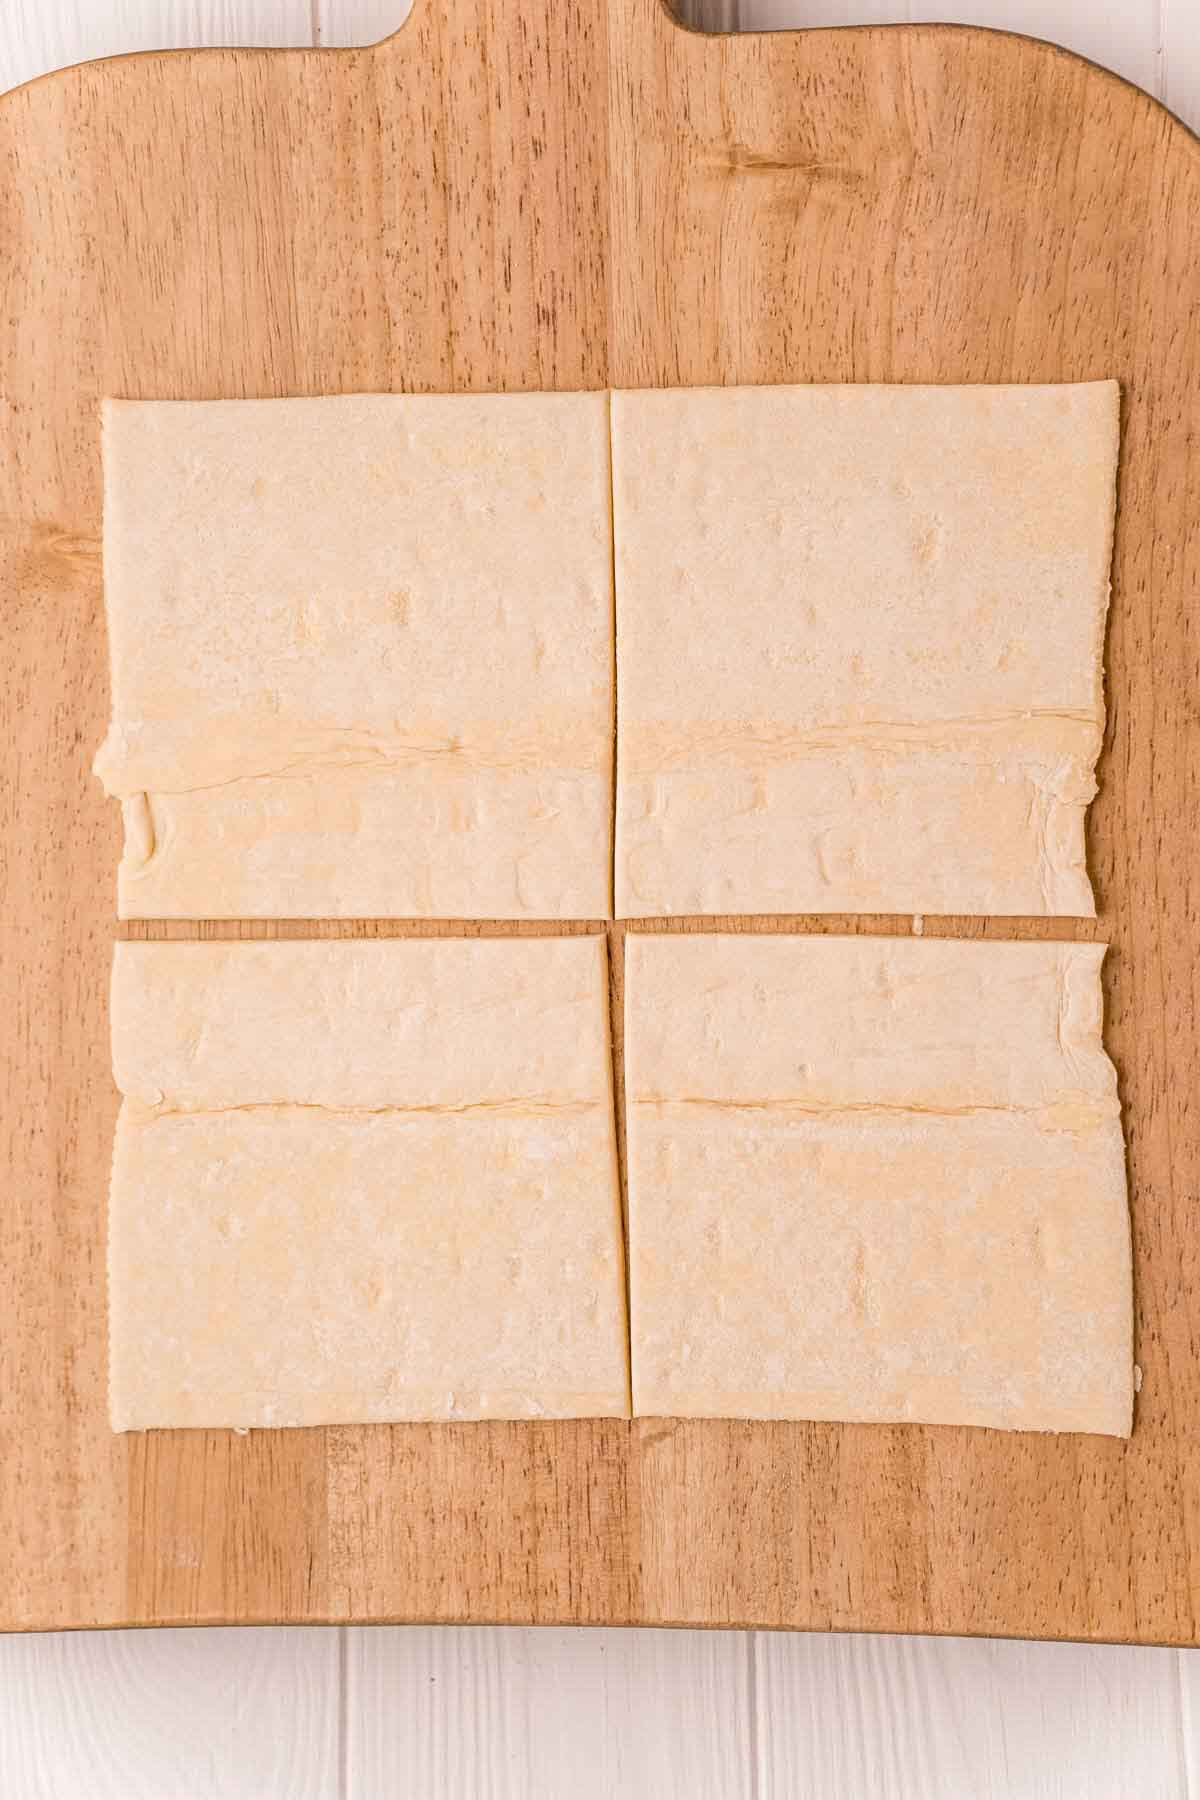 Puff pastry sheet cut into four squares